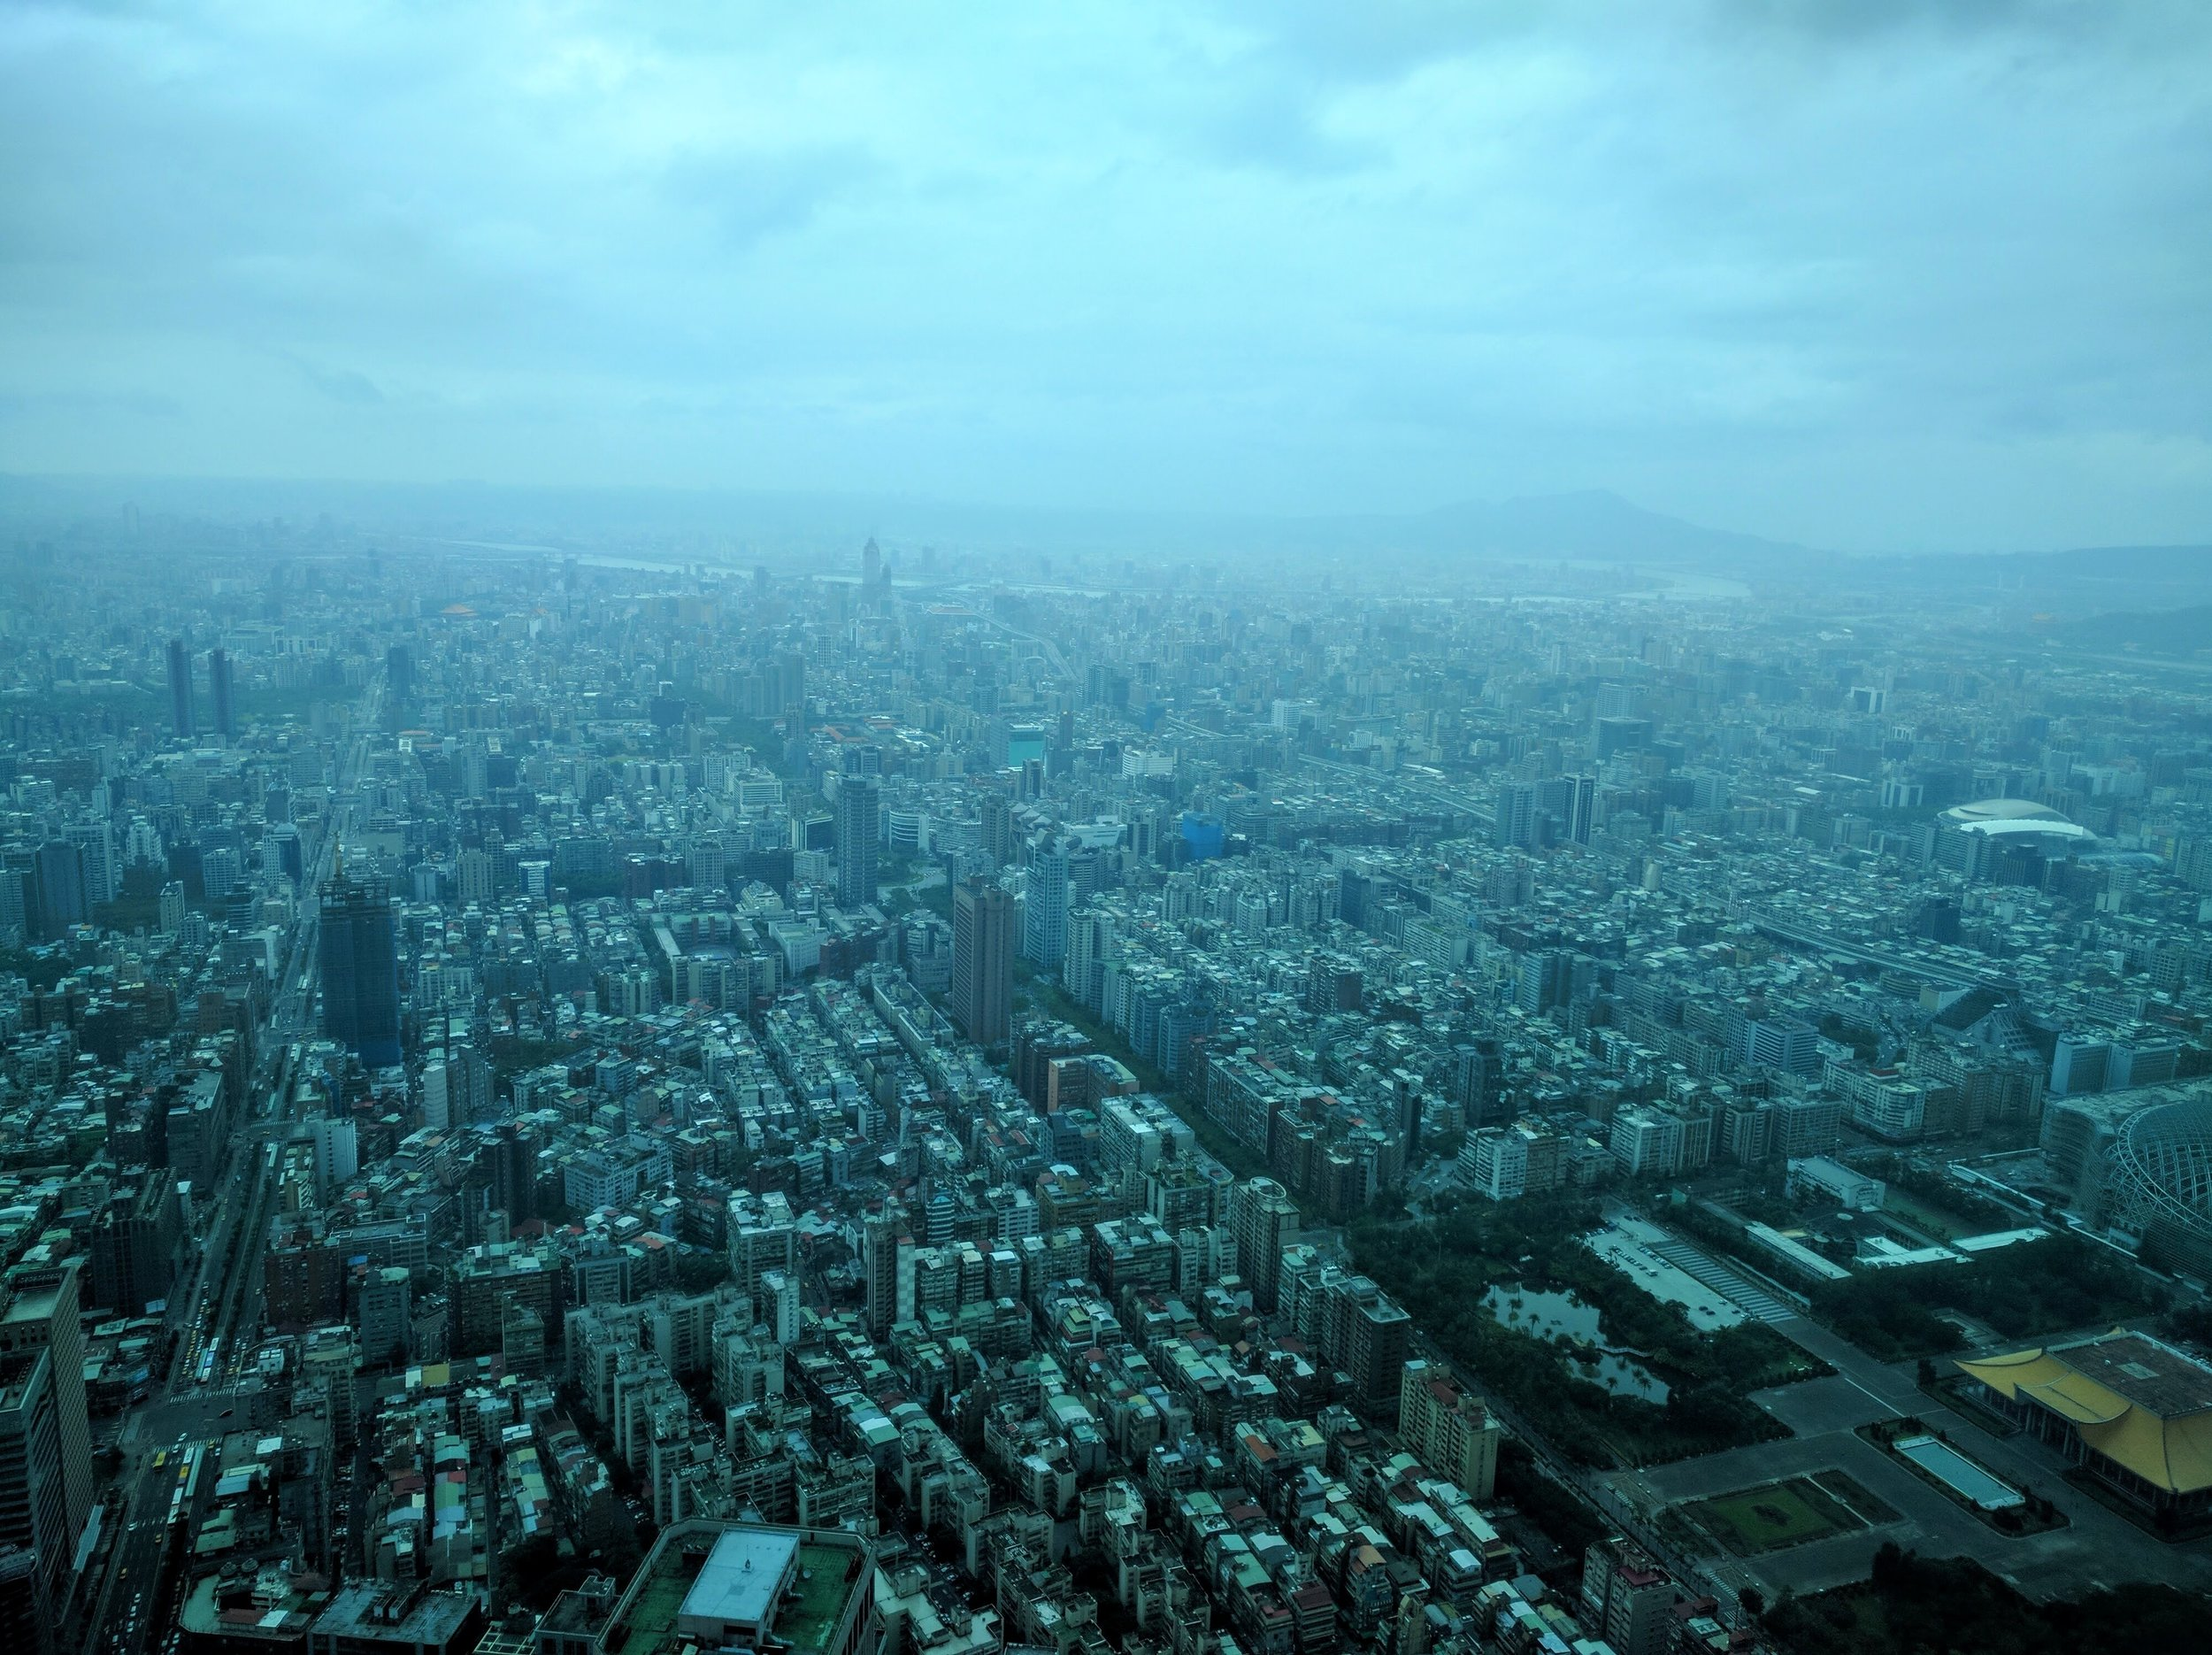 The view from Taipei 101 on a foggy day // Taipei